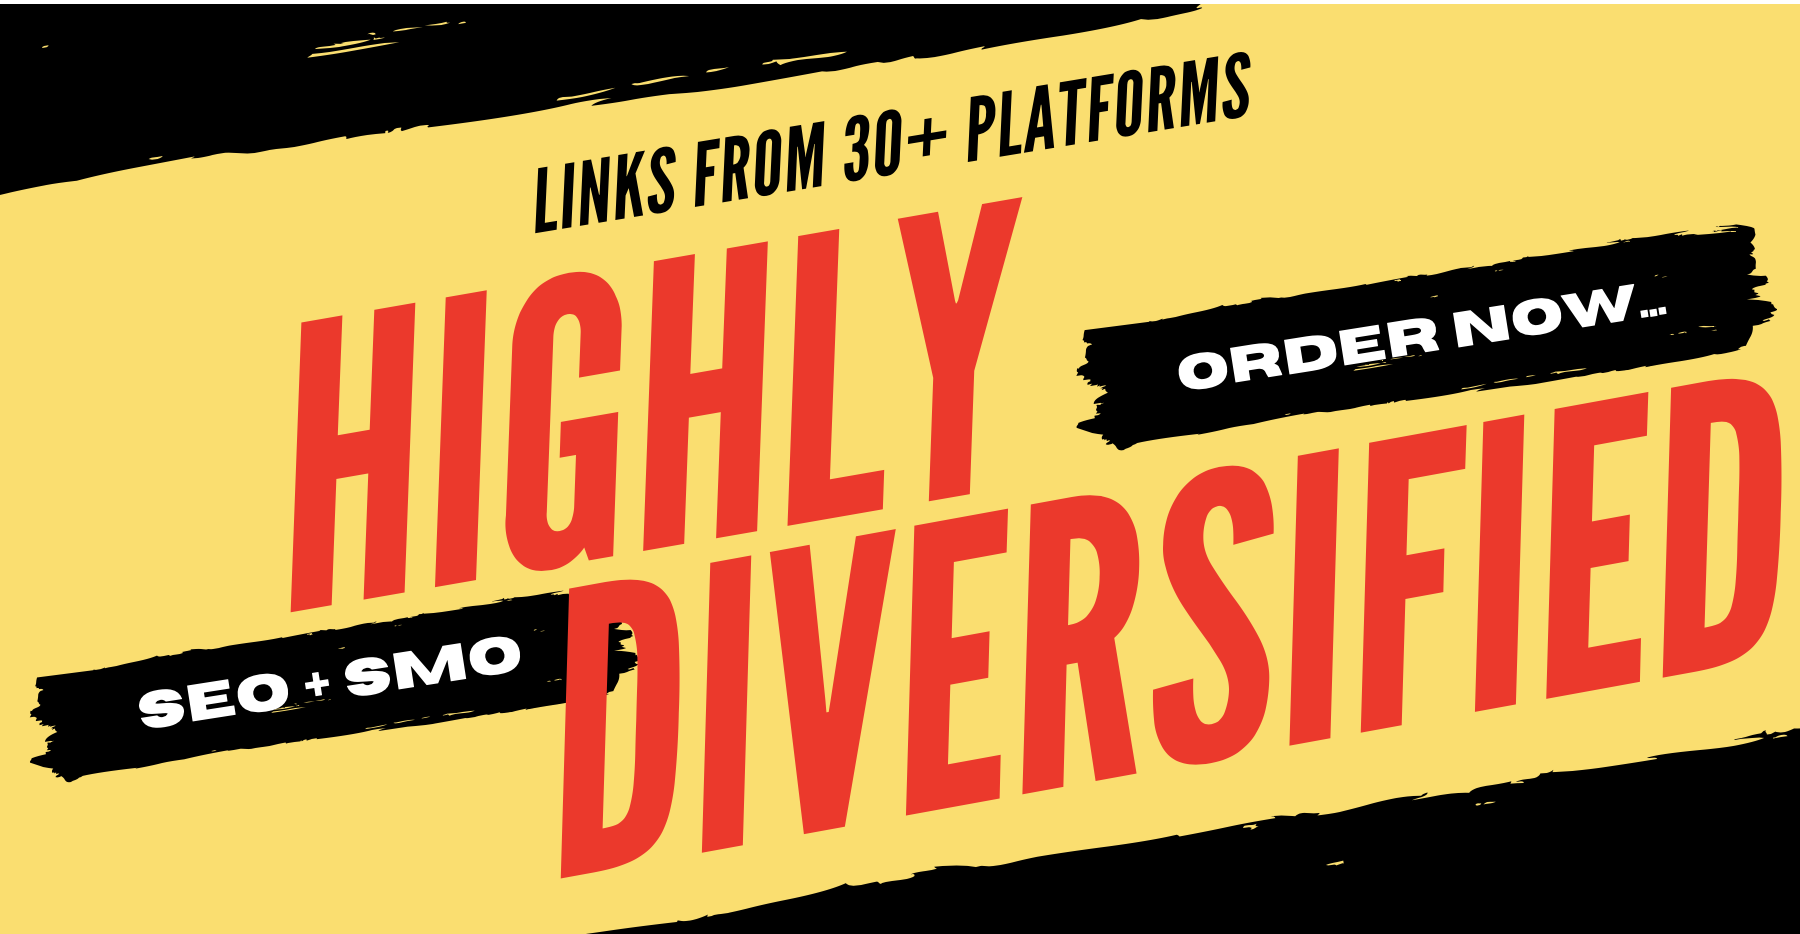 Highly Diversified SEO and SMO with 30+ Platforms & LINDEXED Submission